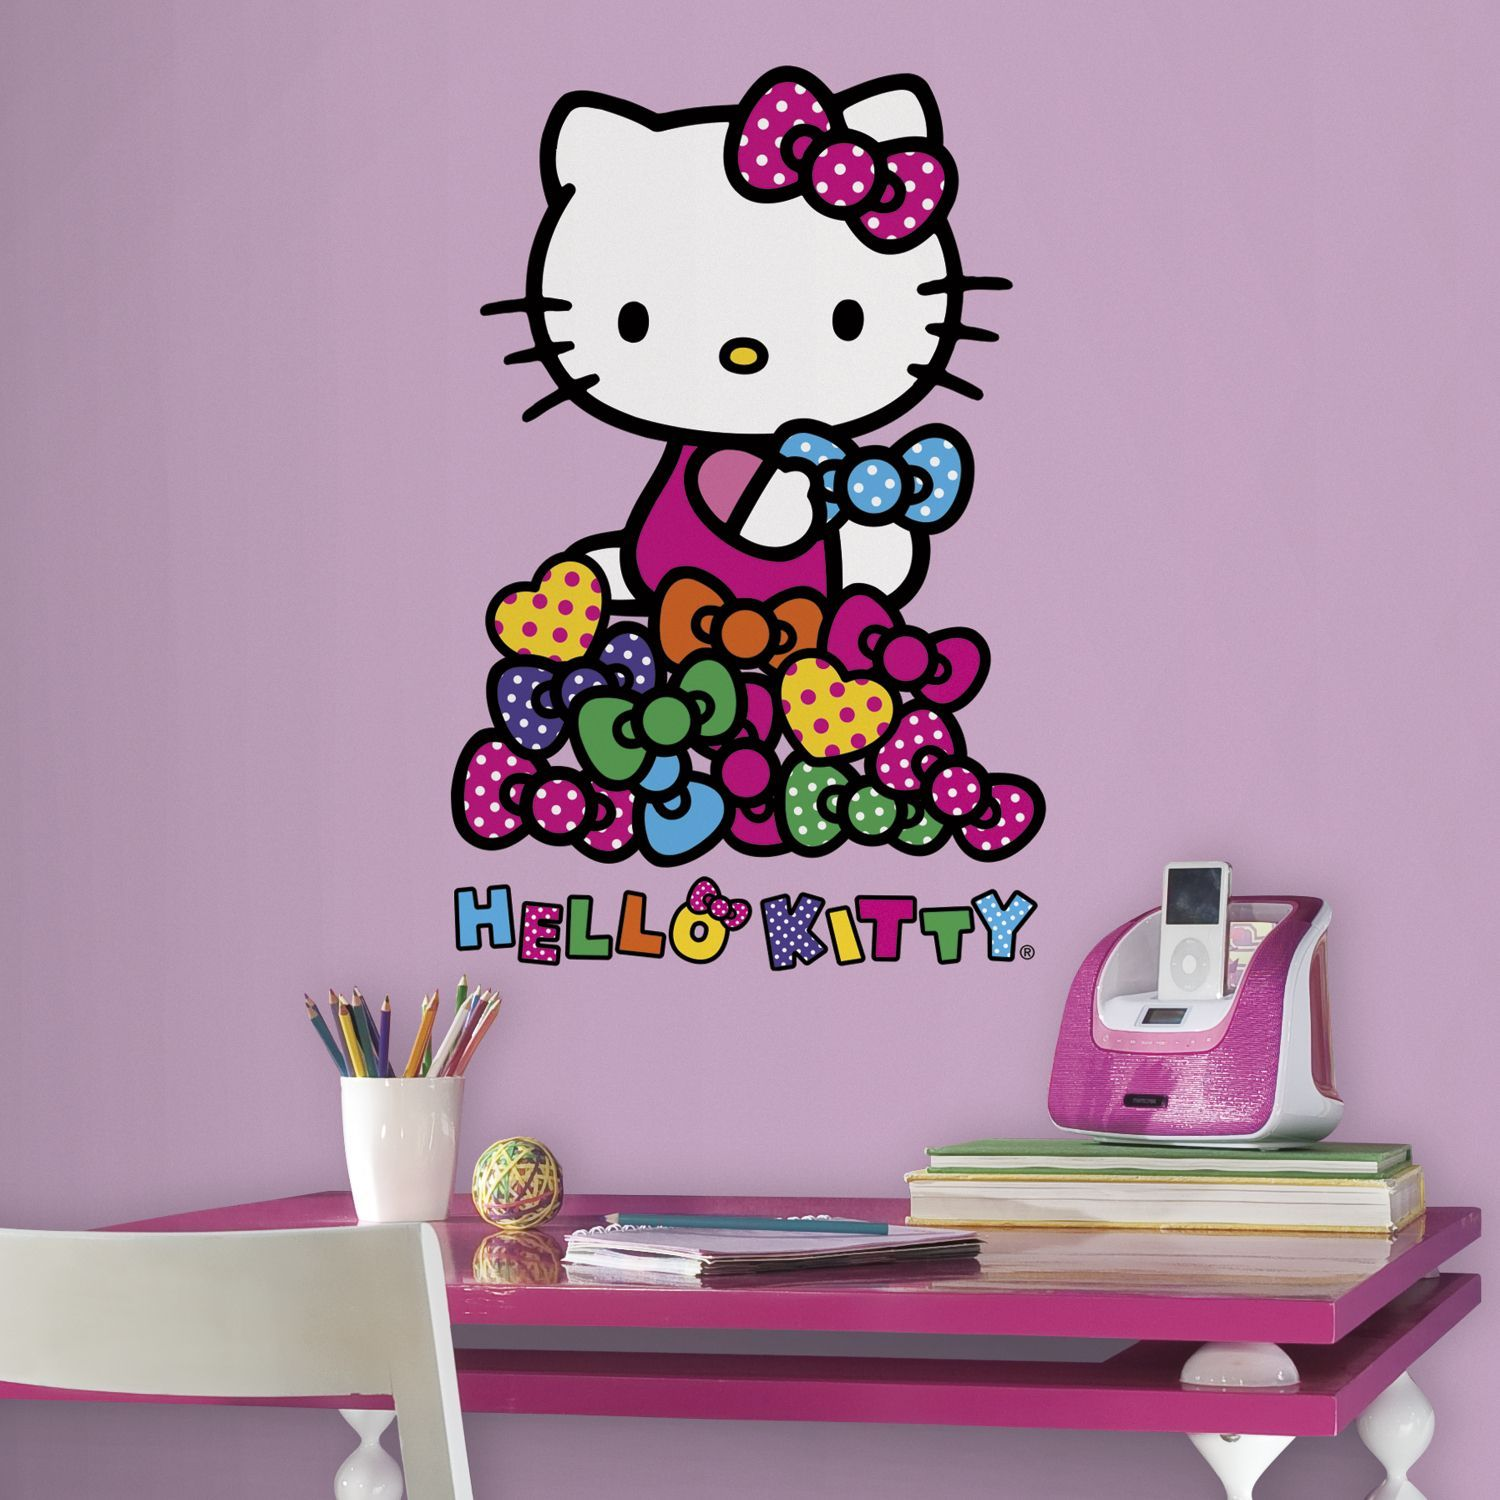 Roommates Hello Kitty Bows Peel And Stick Wall Decal Vinyl